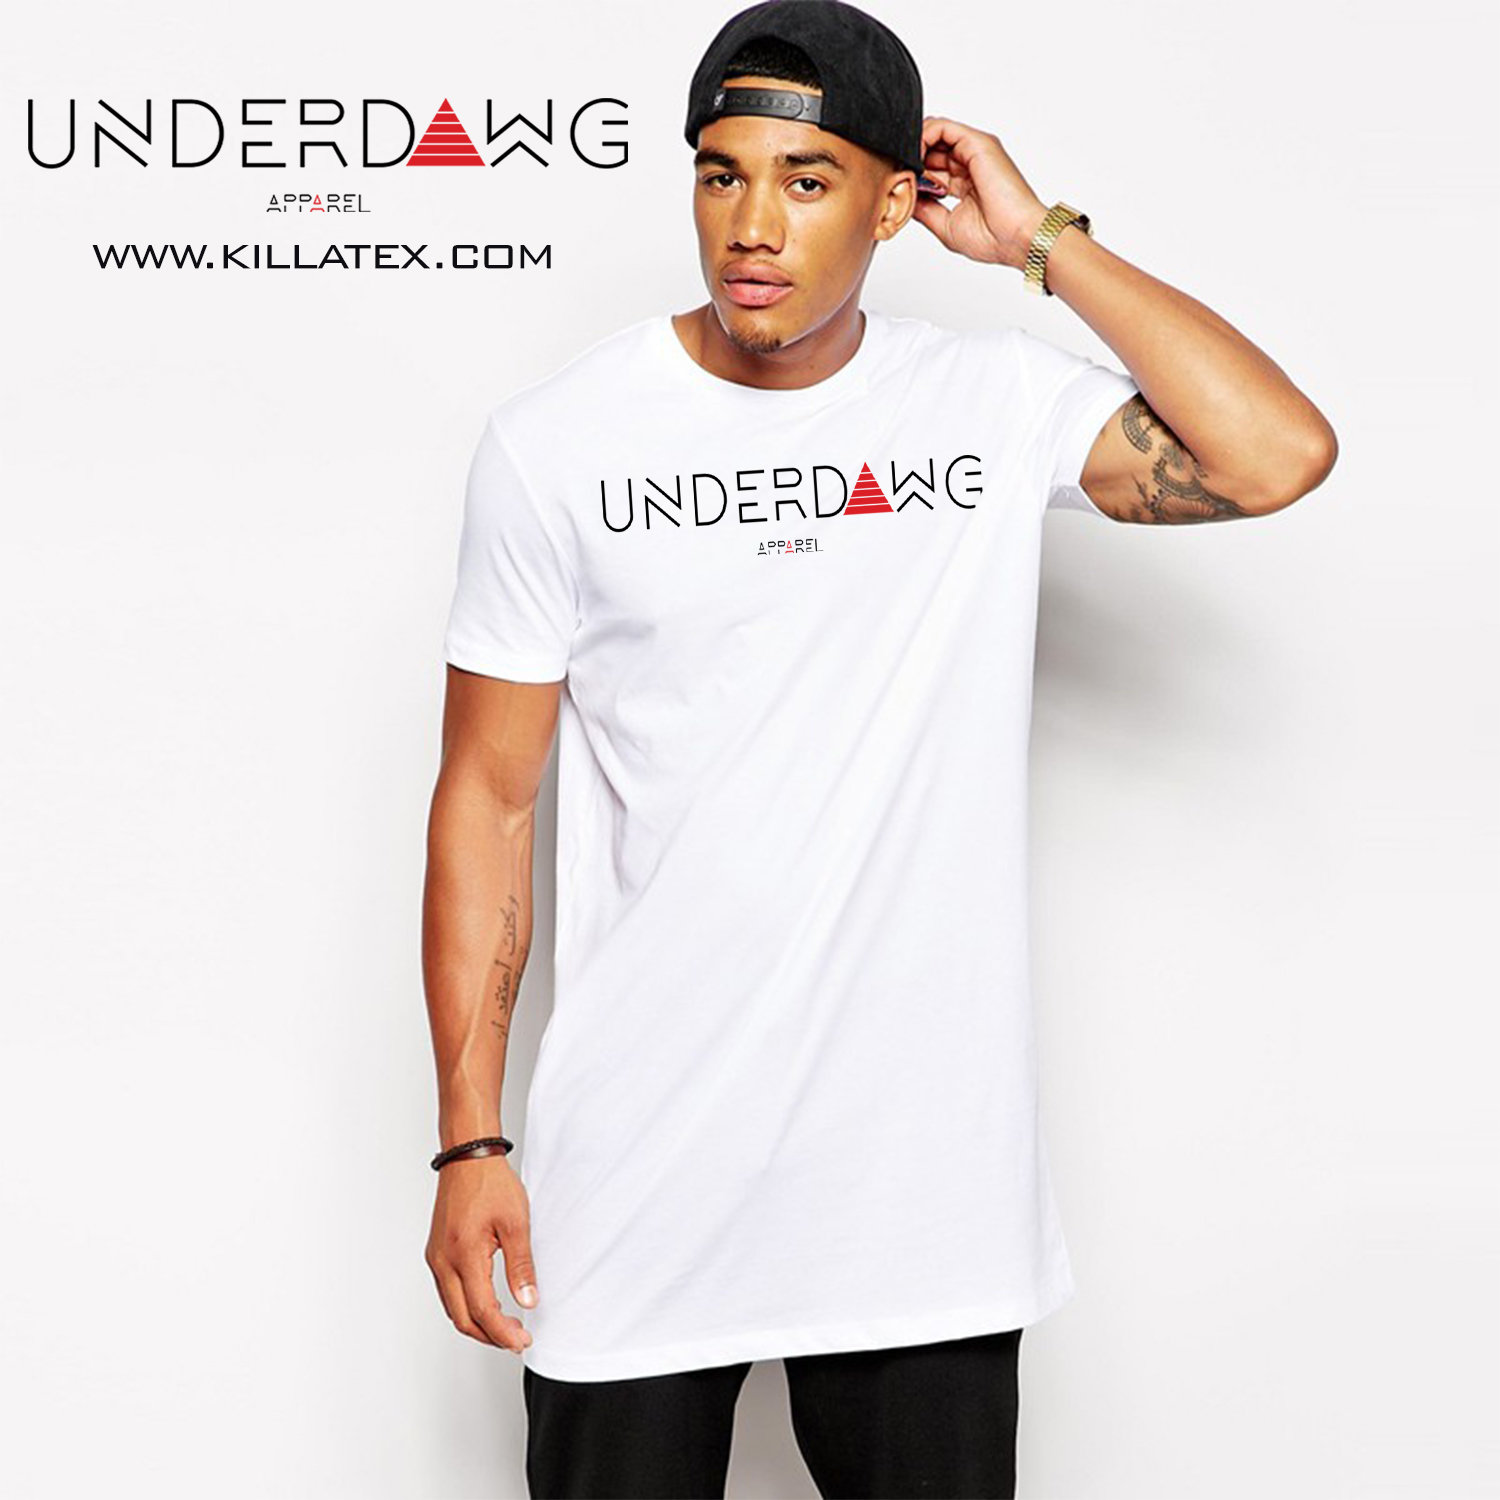 UnderDawg Apparel Short-Sleeve T-Shirt 00033